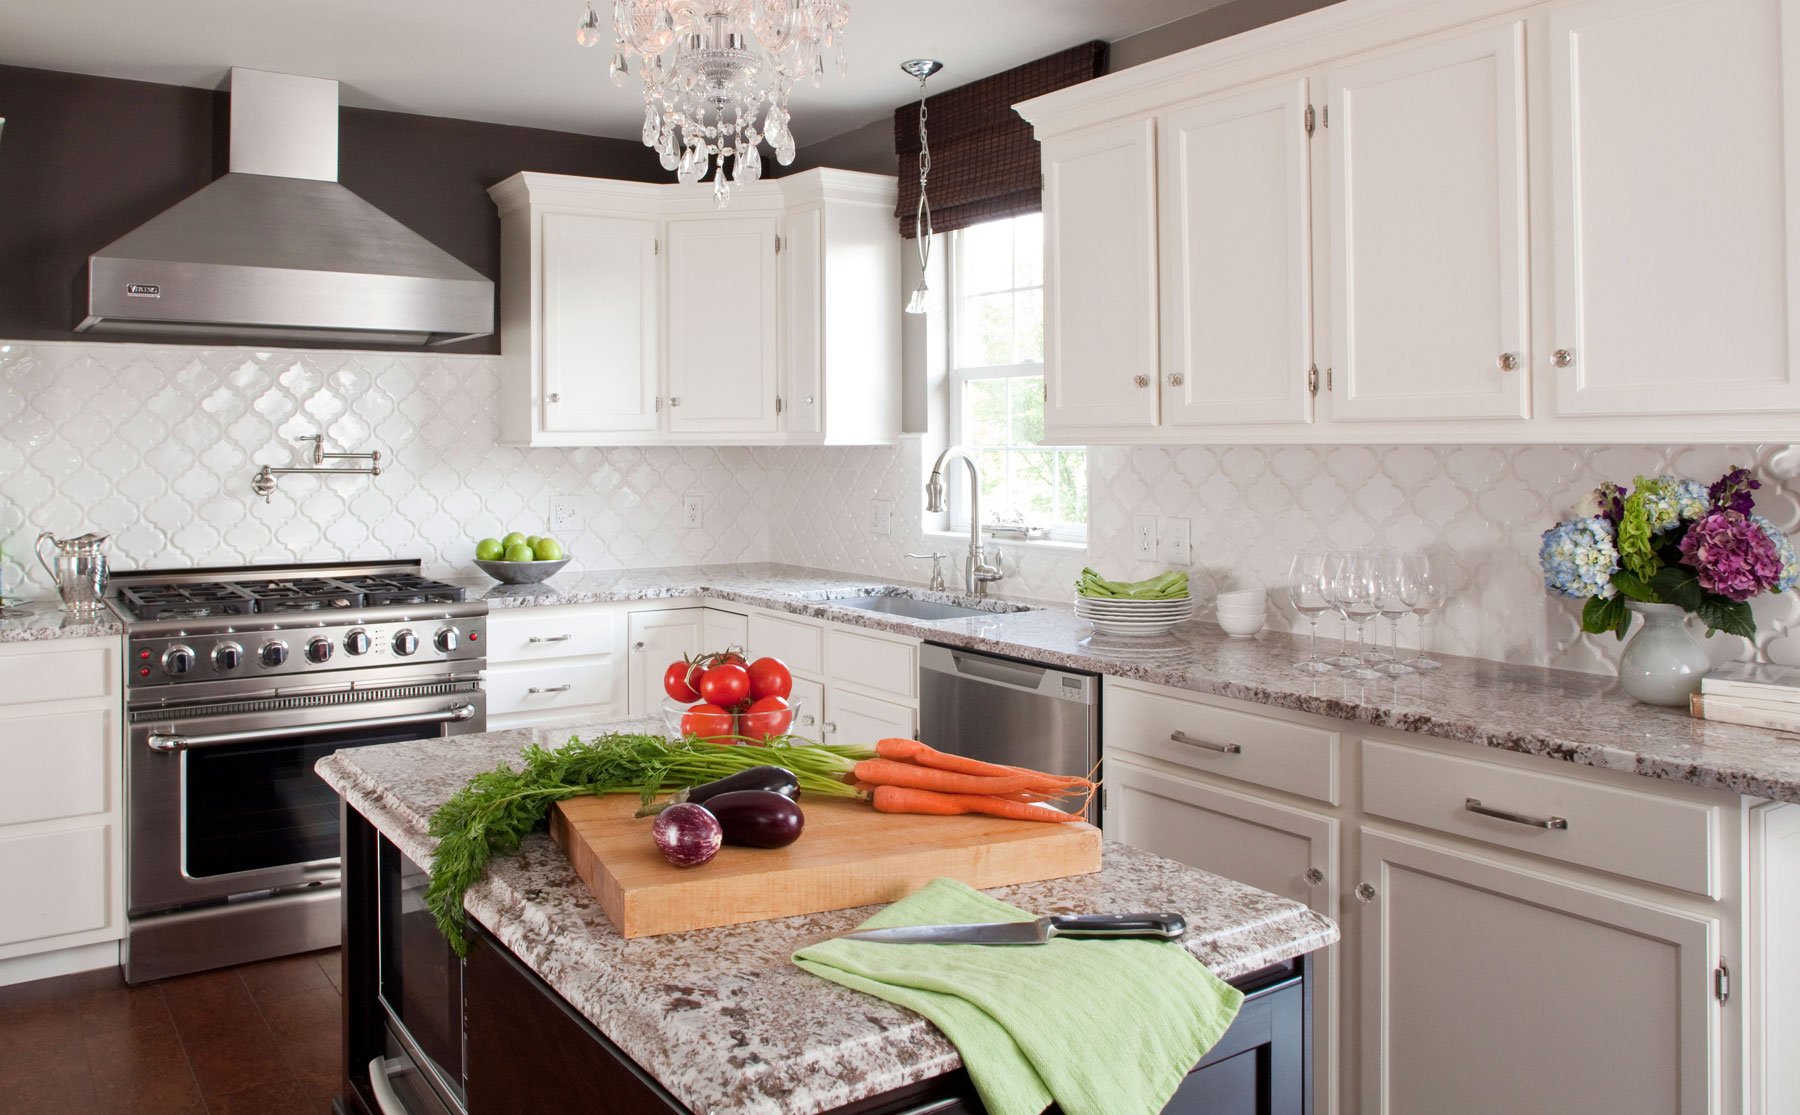 4 Impossibly Stylish Ways To Make Two Toned Cabinets Work In